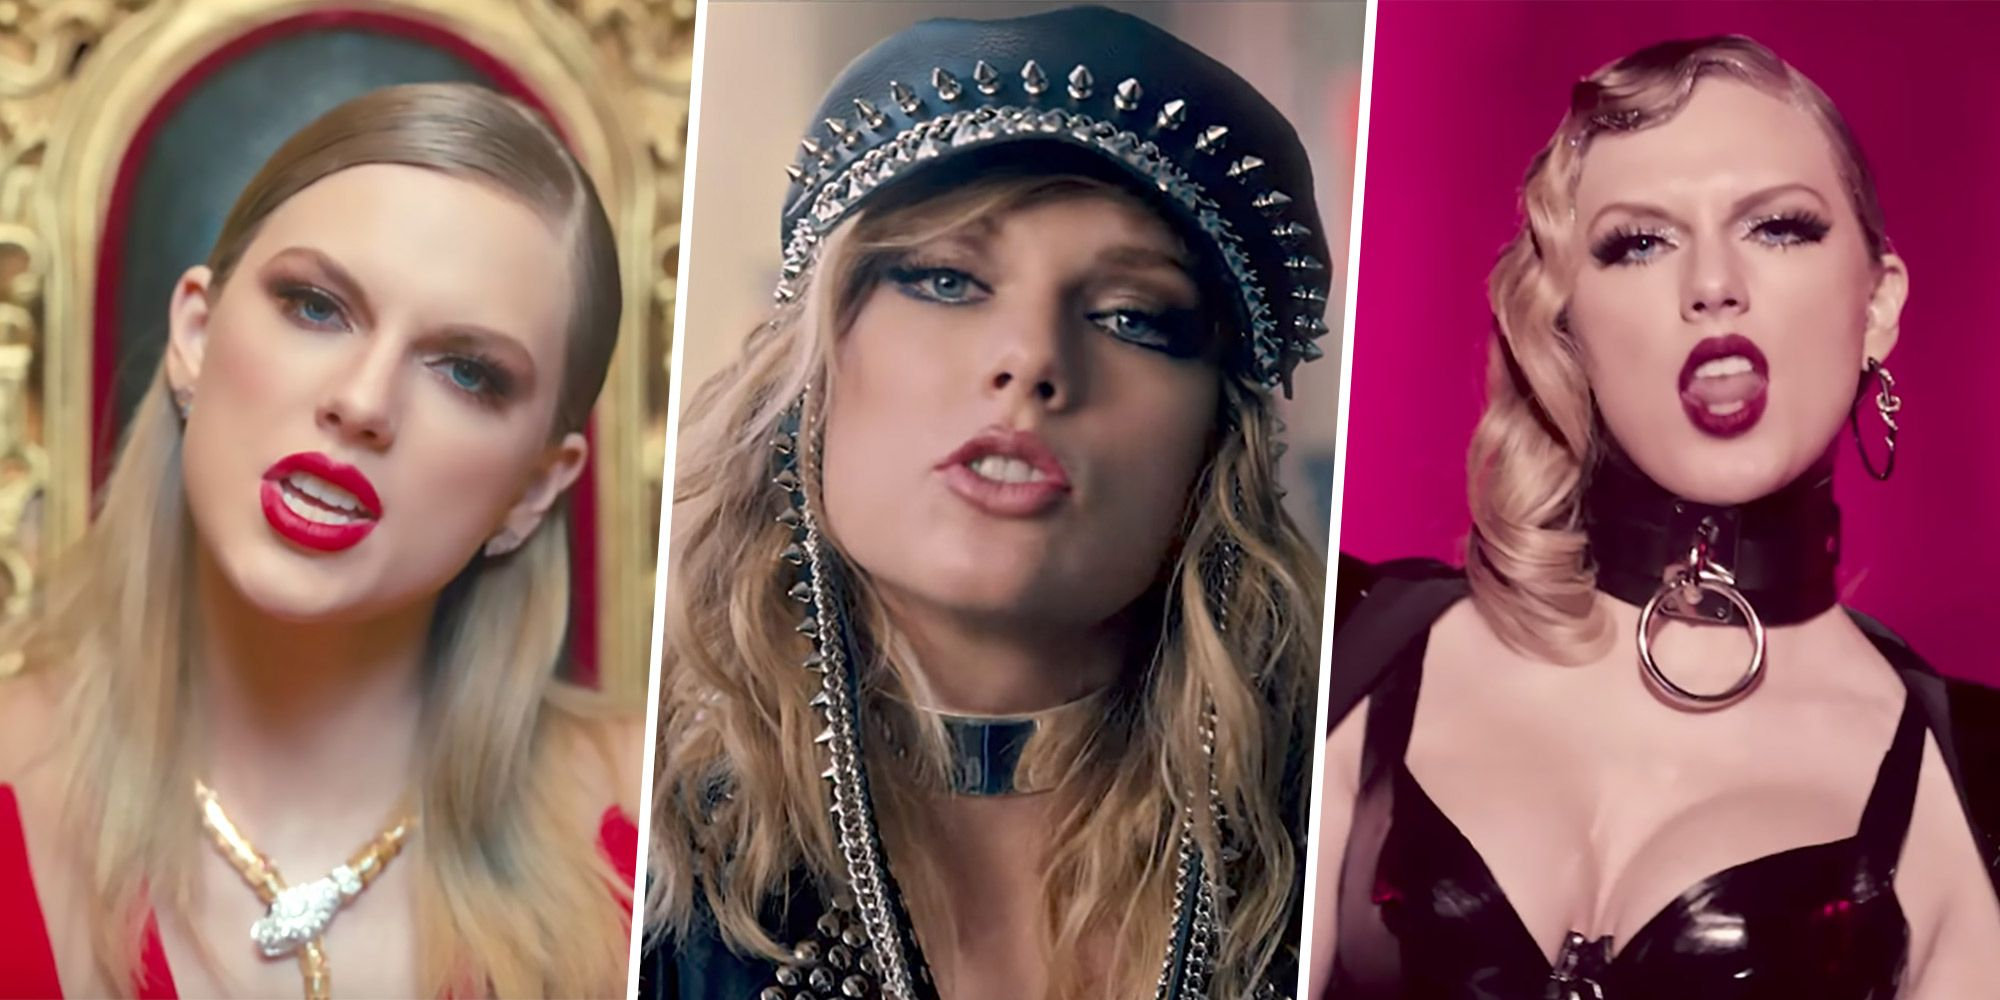 Taylor Swift Look What You Made Me Do Beauty Looks 16 Hair And